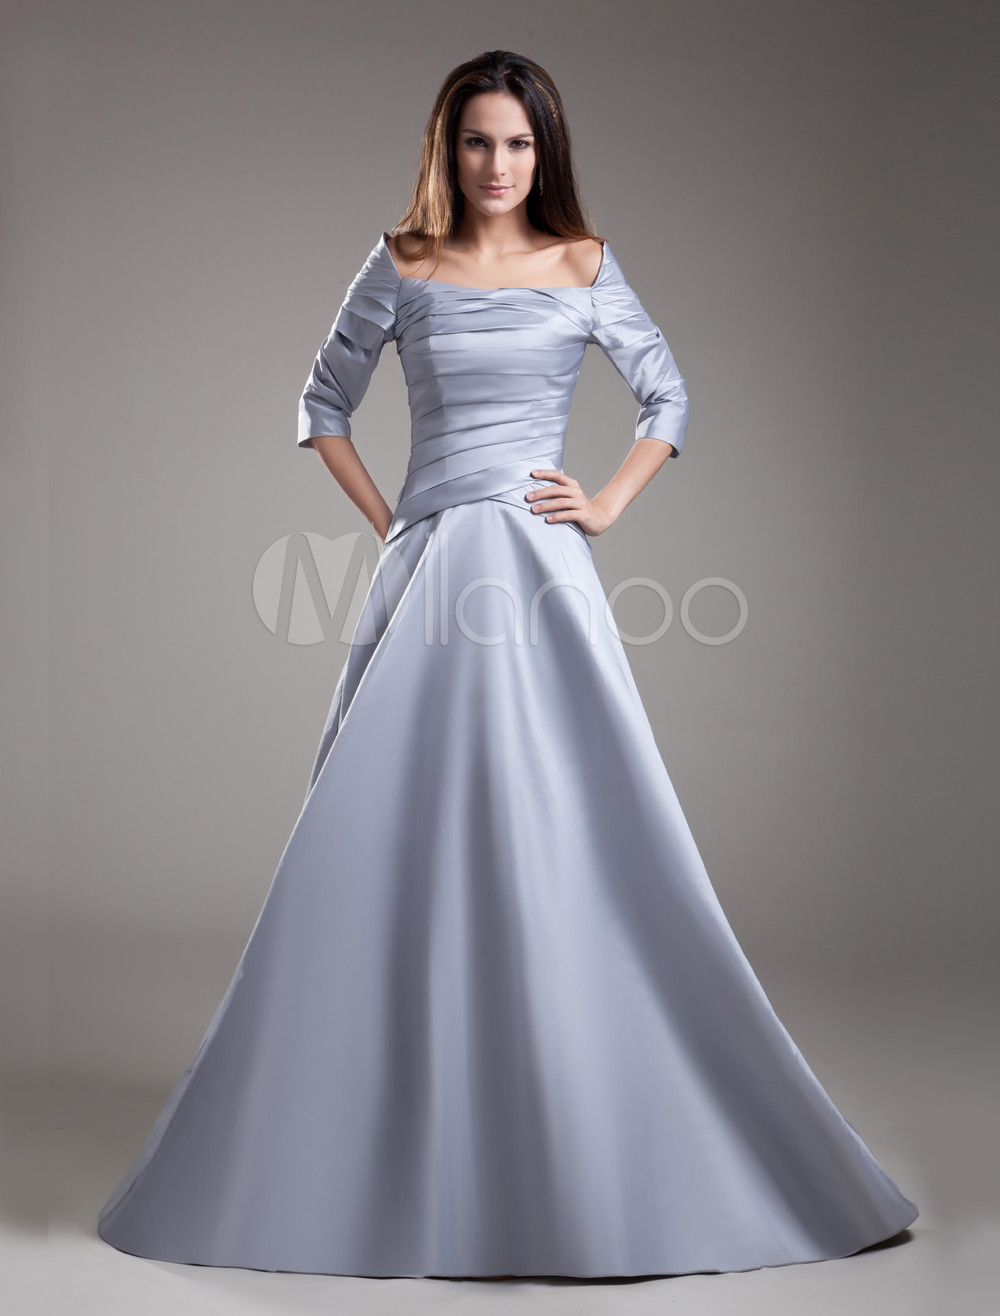 Silver A-line 3/4 Length Sleeves Taffeta Bridal Mother Dress